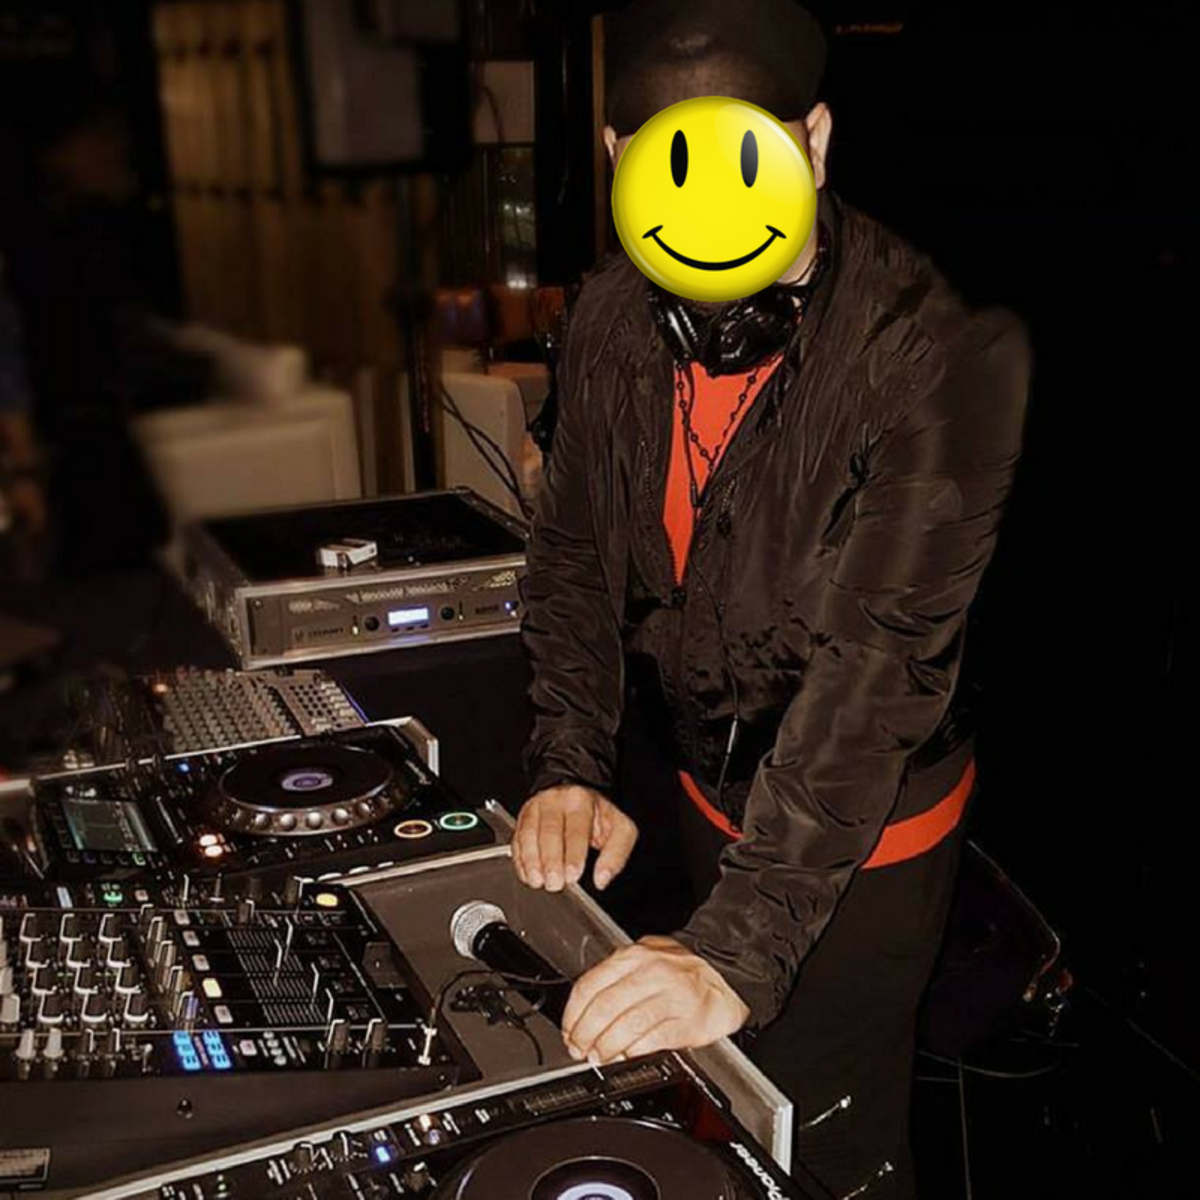 DJ Kareem Infinity - The image has been modified to protect his identity.